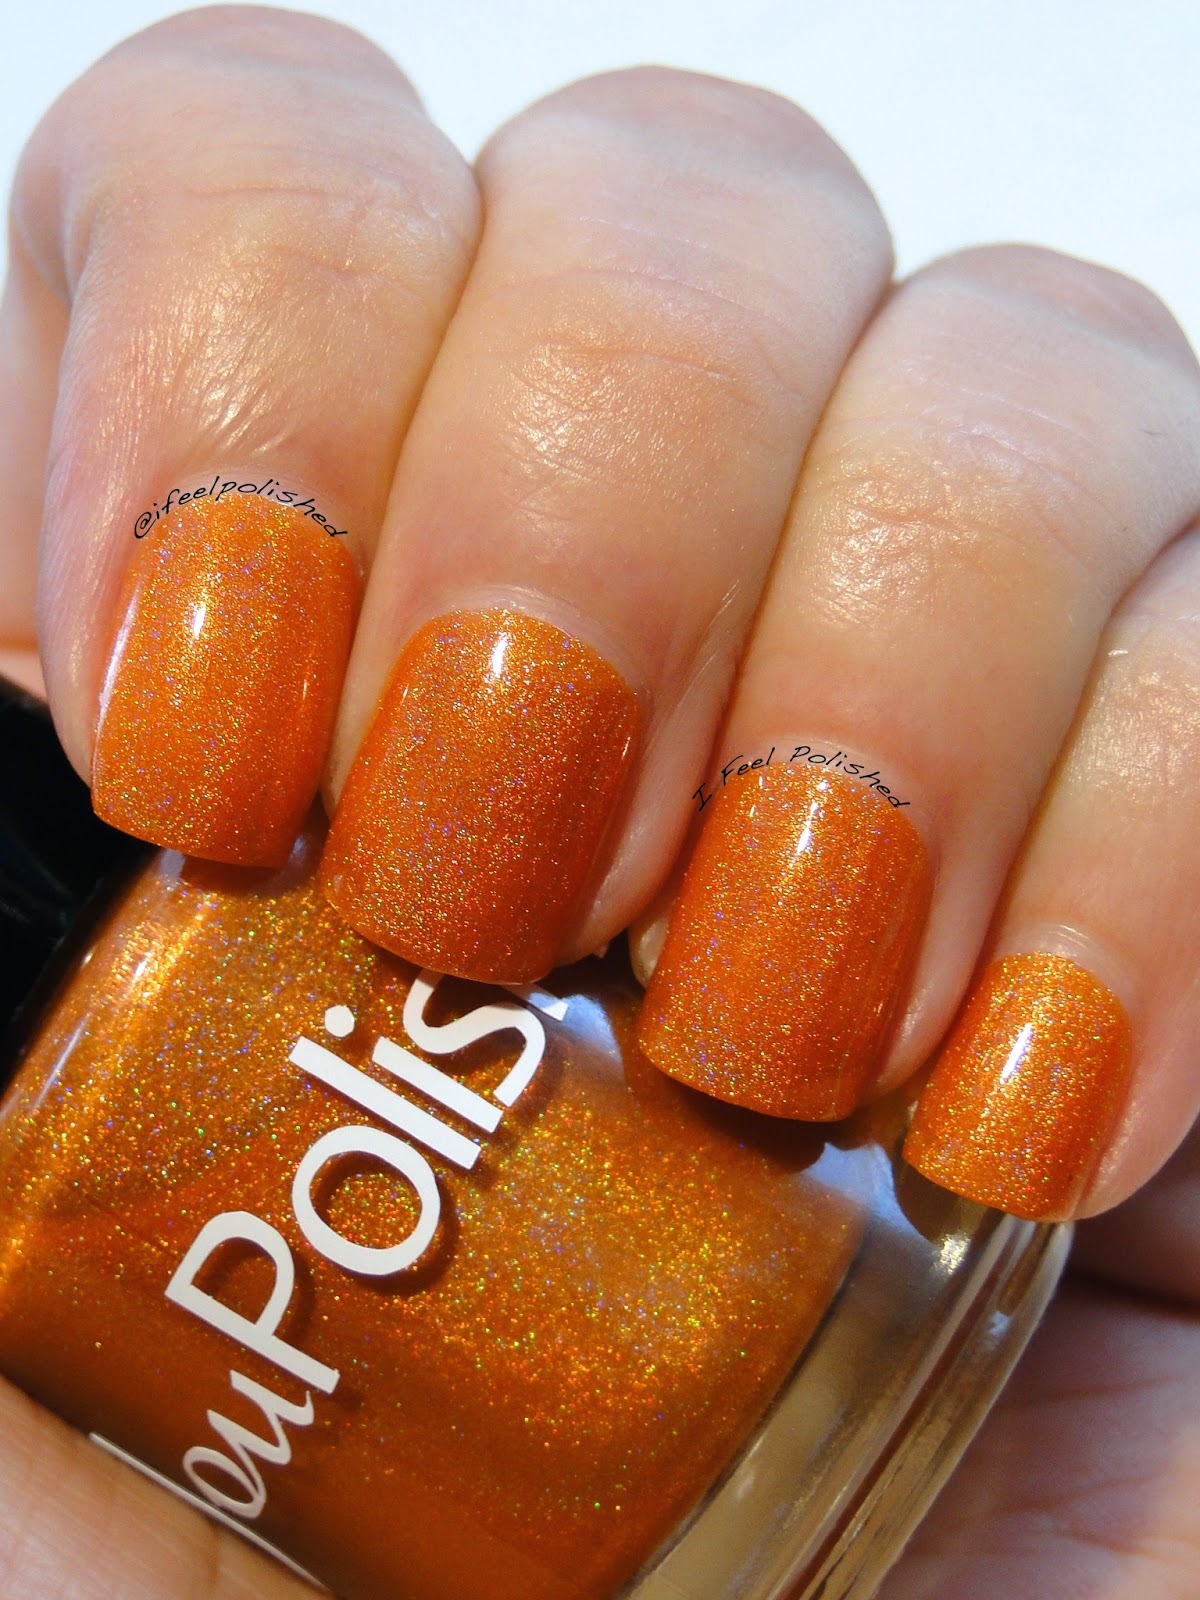 You Polish Orange You Appealing